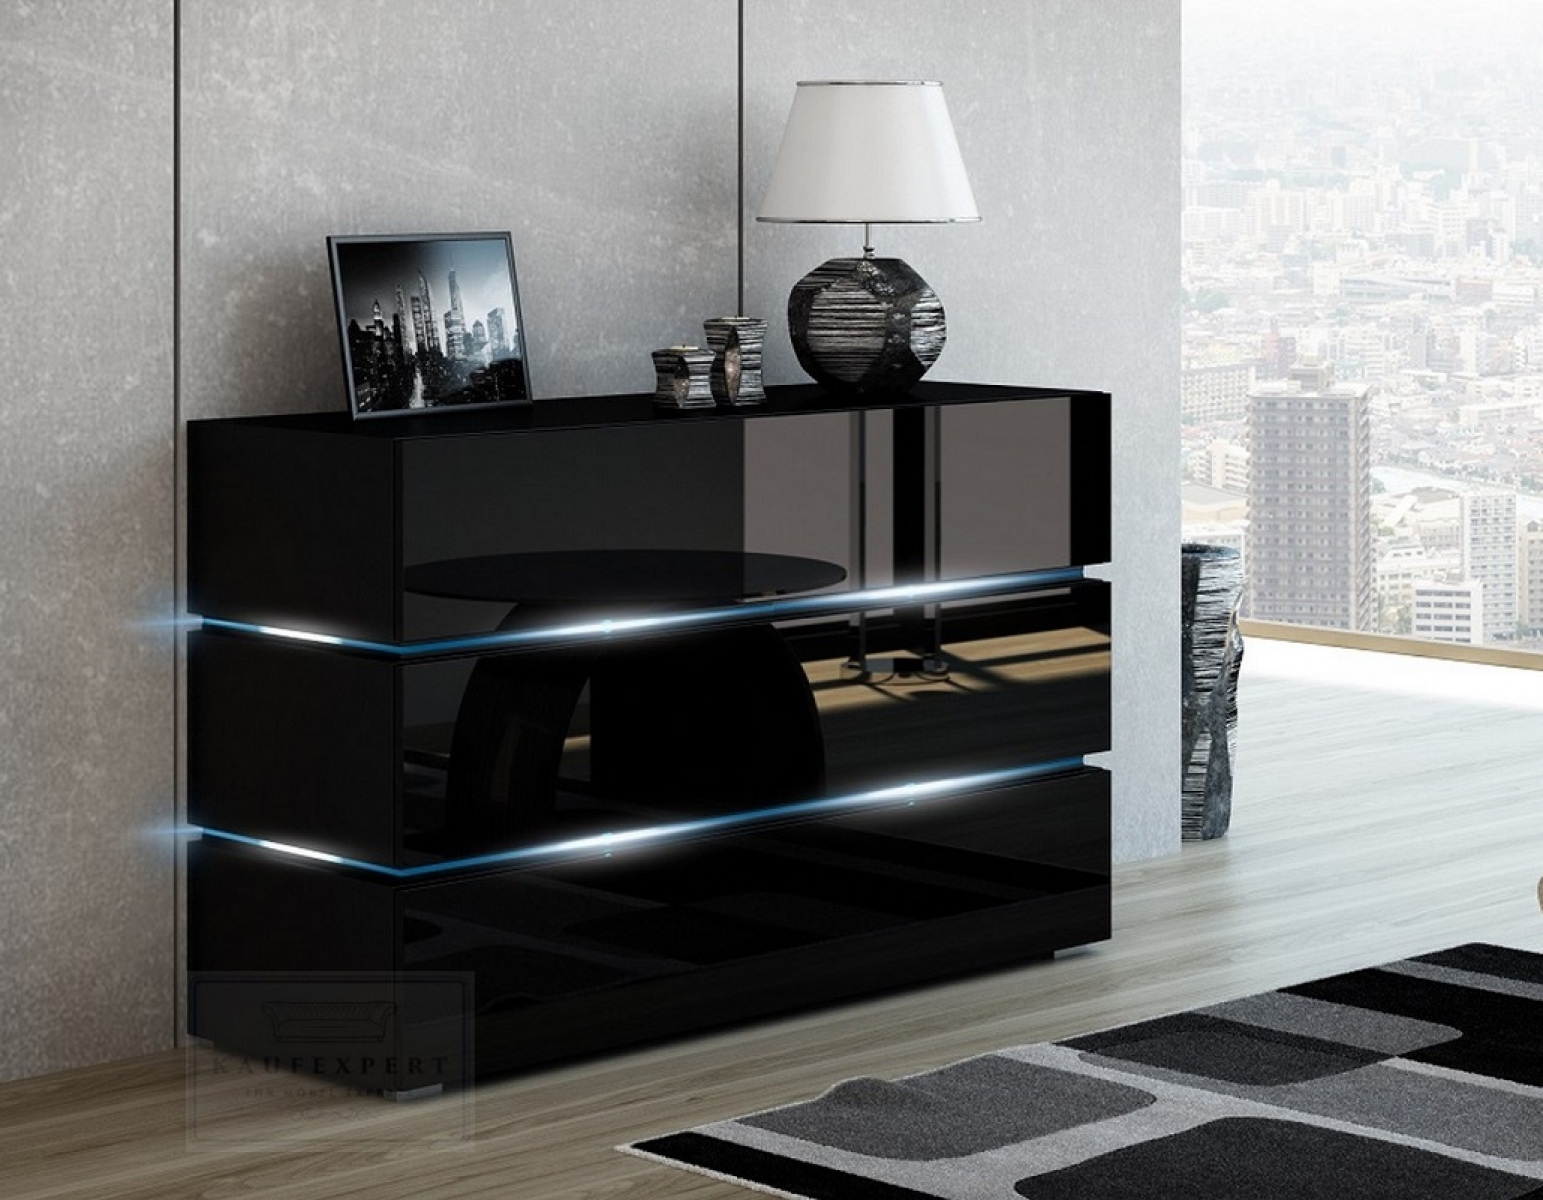 kaufexpert kommode shine sideboard 120 cm schwarz hochglanz led beleuchtung modern design tv. Black Bedroom Furniture Sets. Home Design Ideas